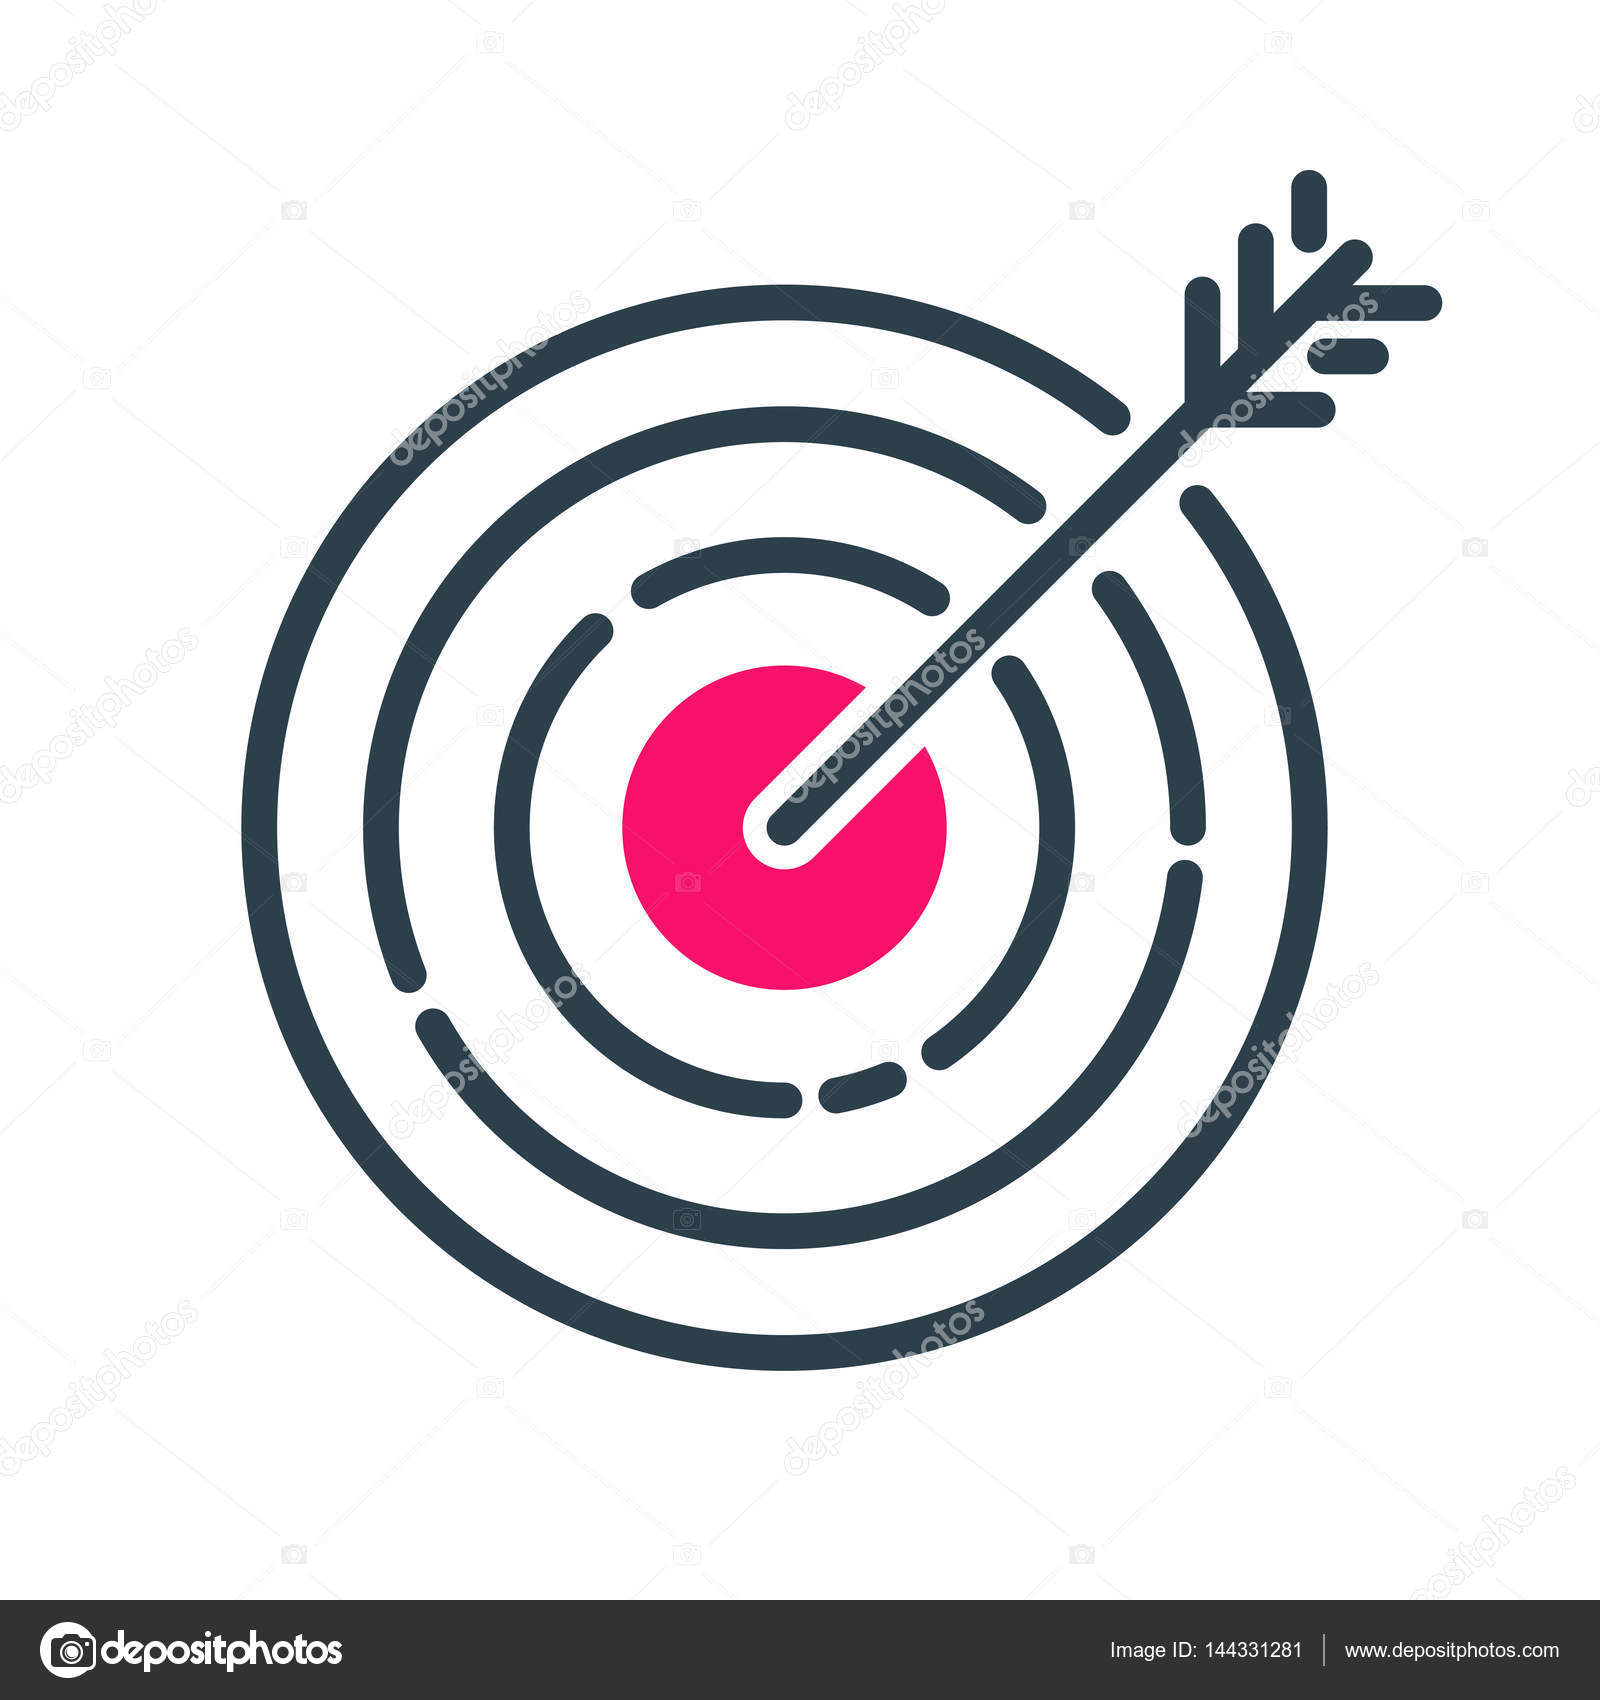 Motivation concept target chart icon business strategy development motivation concept target chart icon business strategy development design and management leadership idea creativity office training geenschuldenfo Images